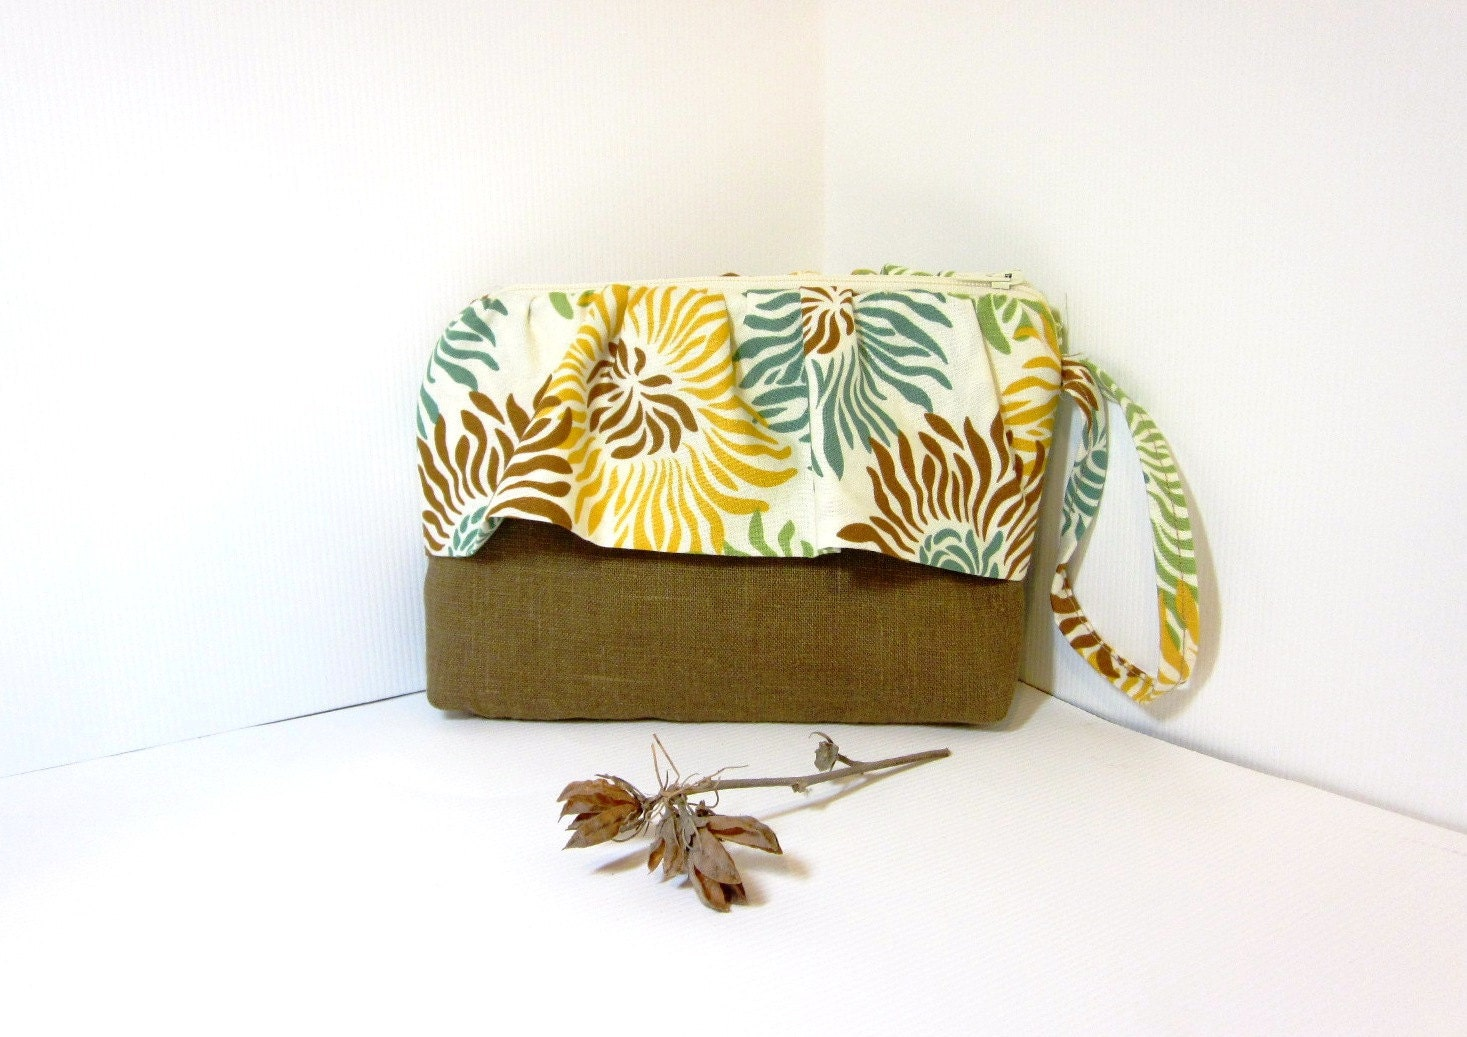 Wristlet  Clutch Small Purse - Mums in Brown - handjstarcreations